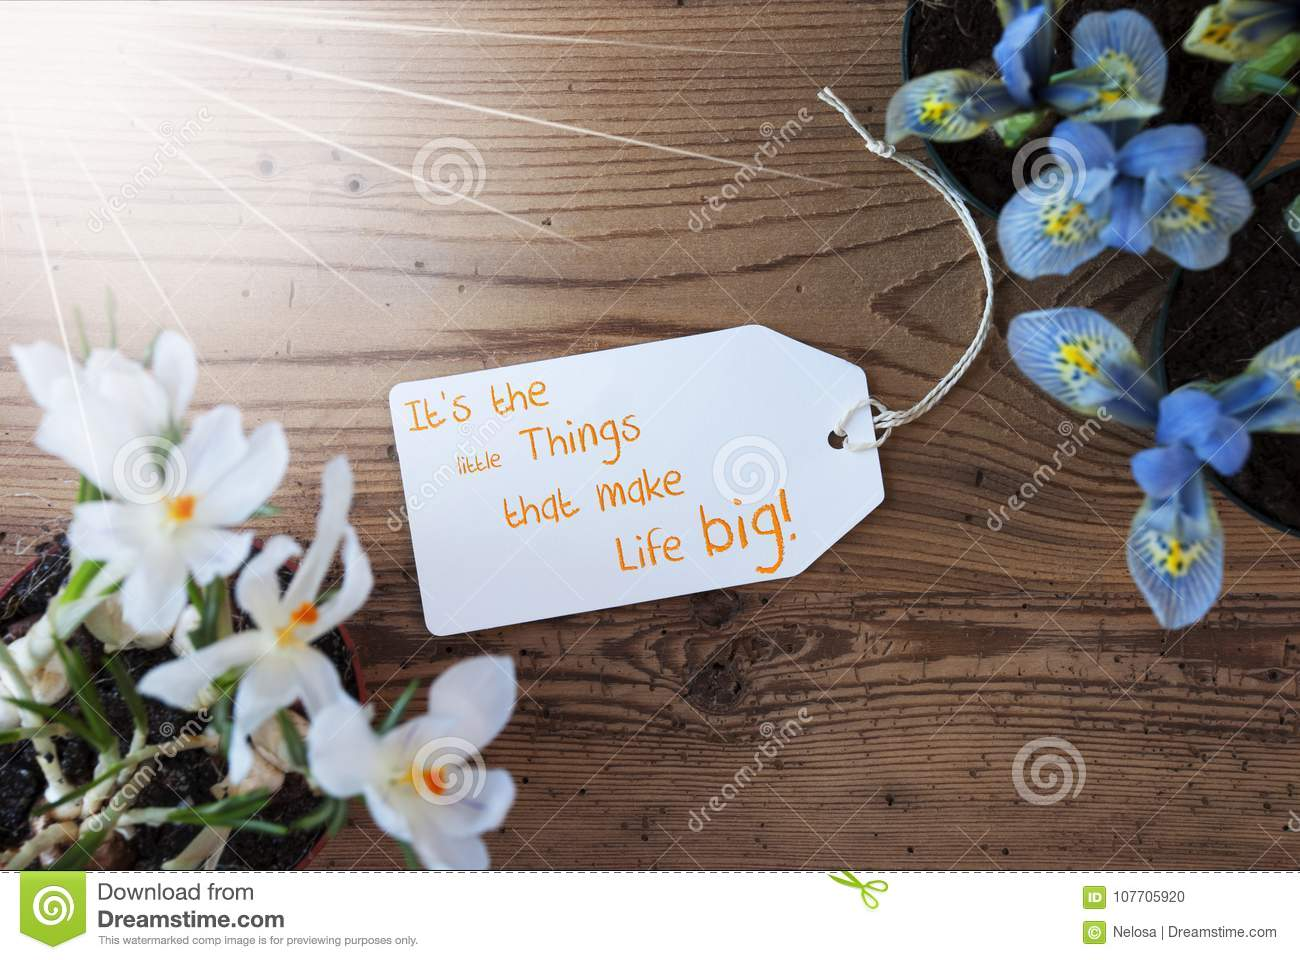 Sunny flowers label quote little things make life big stock photo sunny label with english quote it is little things that make life big spring flowers like grape hyacinth and crocus aged wooden background mightylinksfo